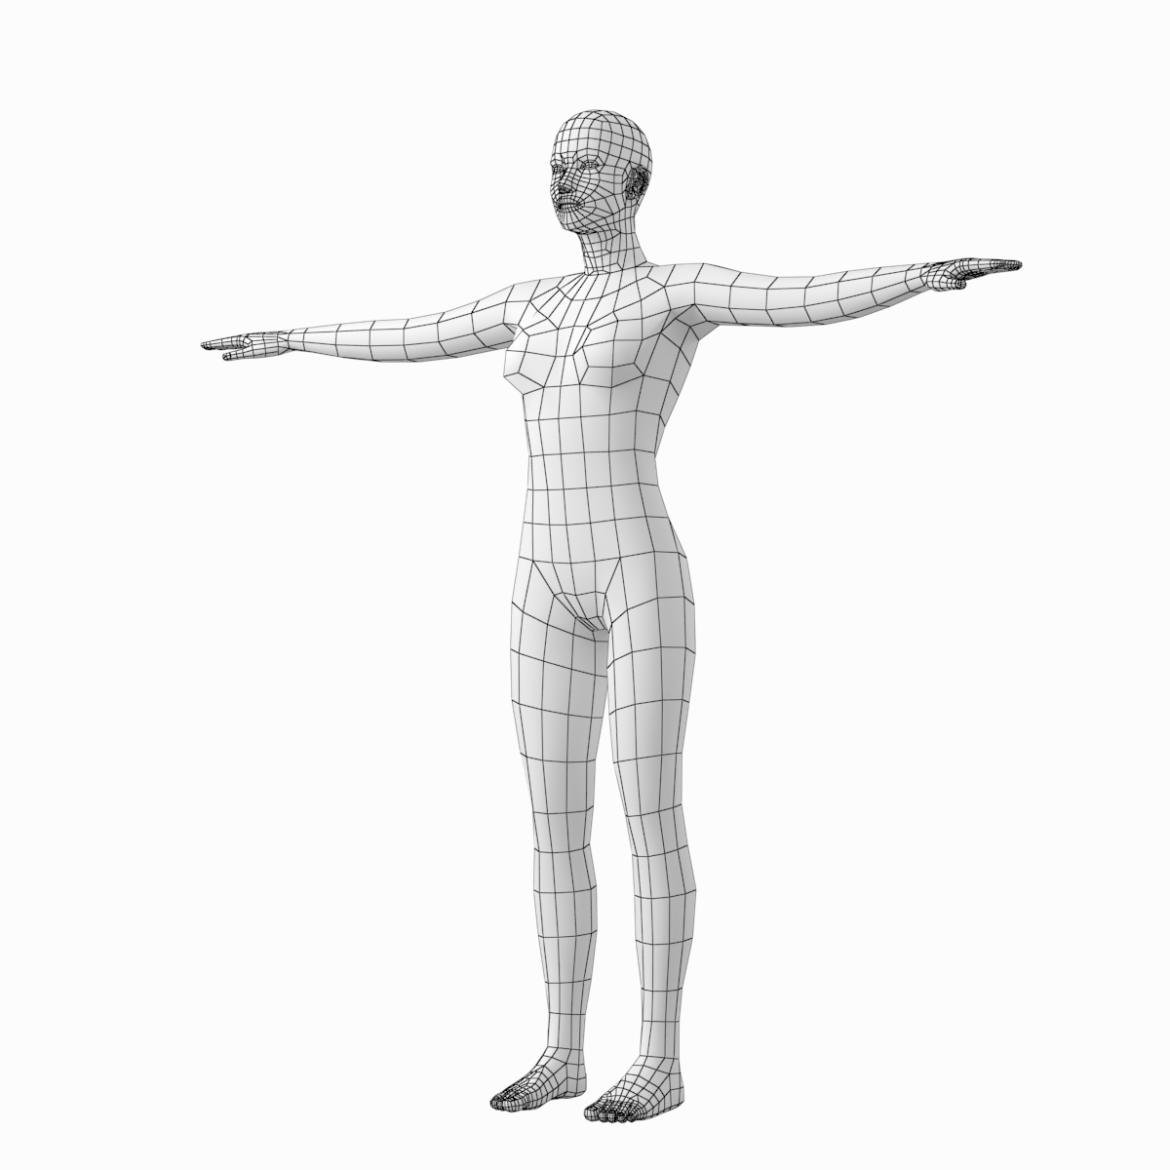 male and female base mesh in t-pose 3d model png stl obj ma mb max fbx dxf dwg dae c4d 3ds txt 305184